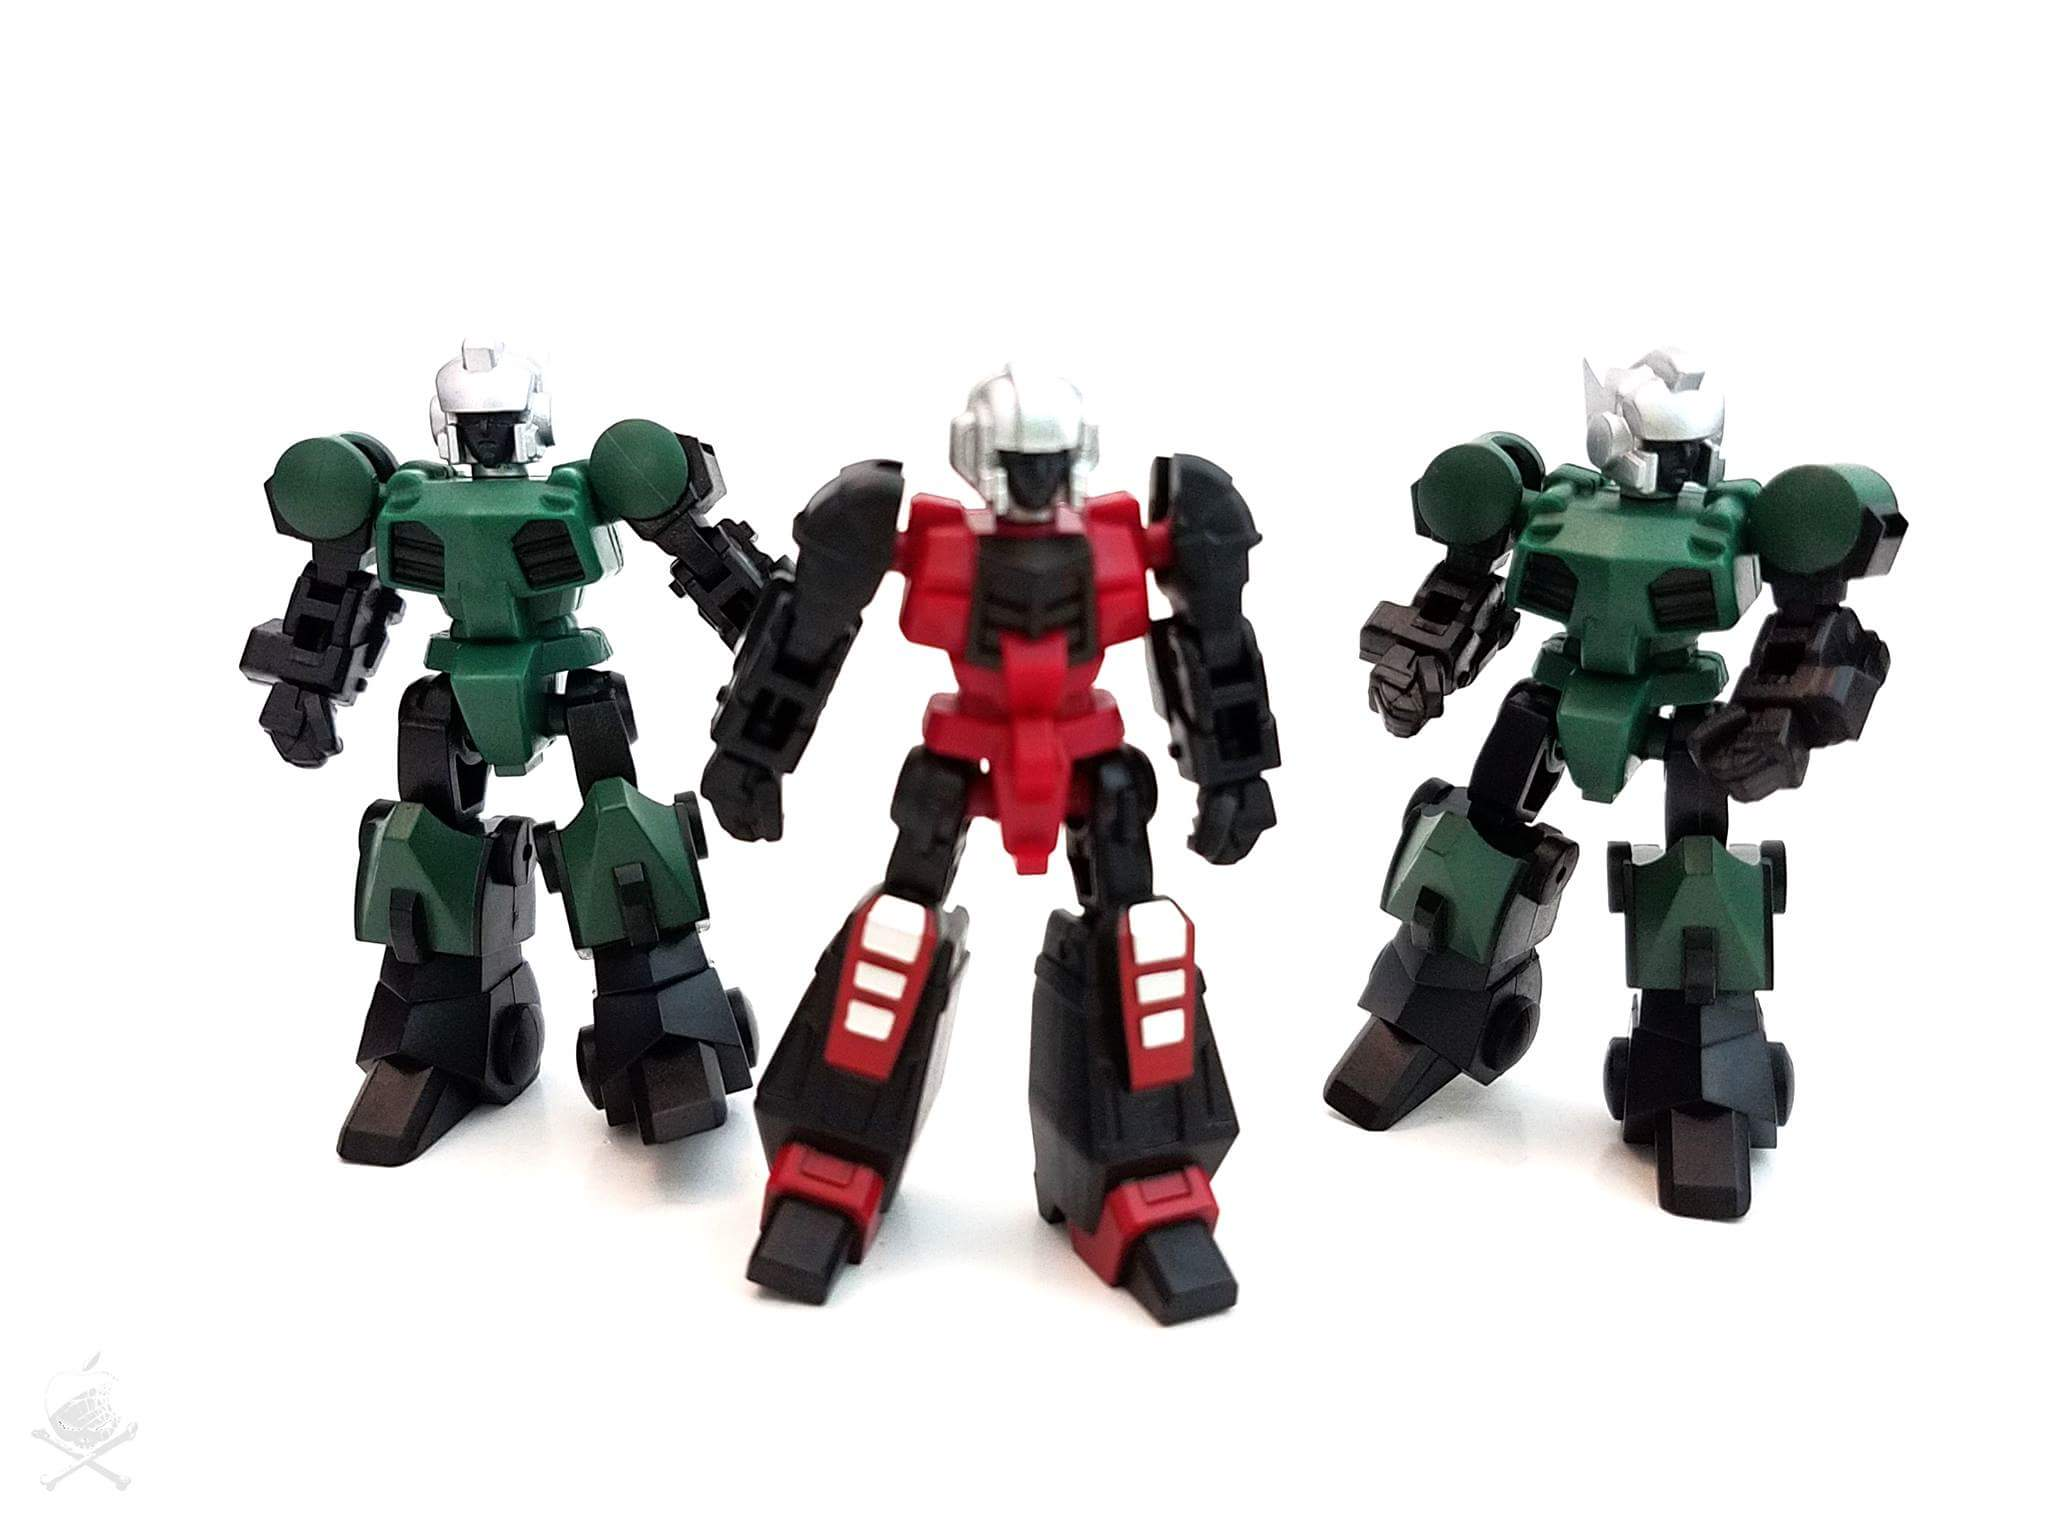 [FansProject] Produit Tiers - Jouets LER (Lost Exo Realm) - aka Dinobots - Page 3 NKK6kaBr